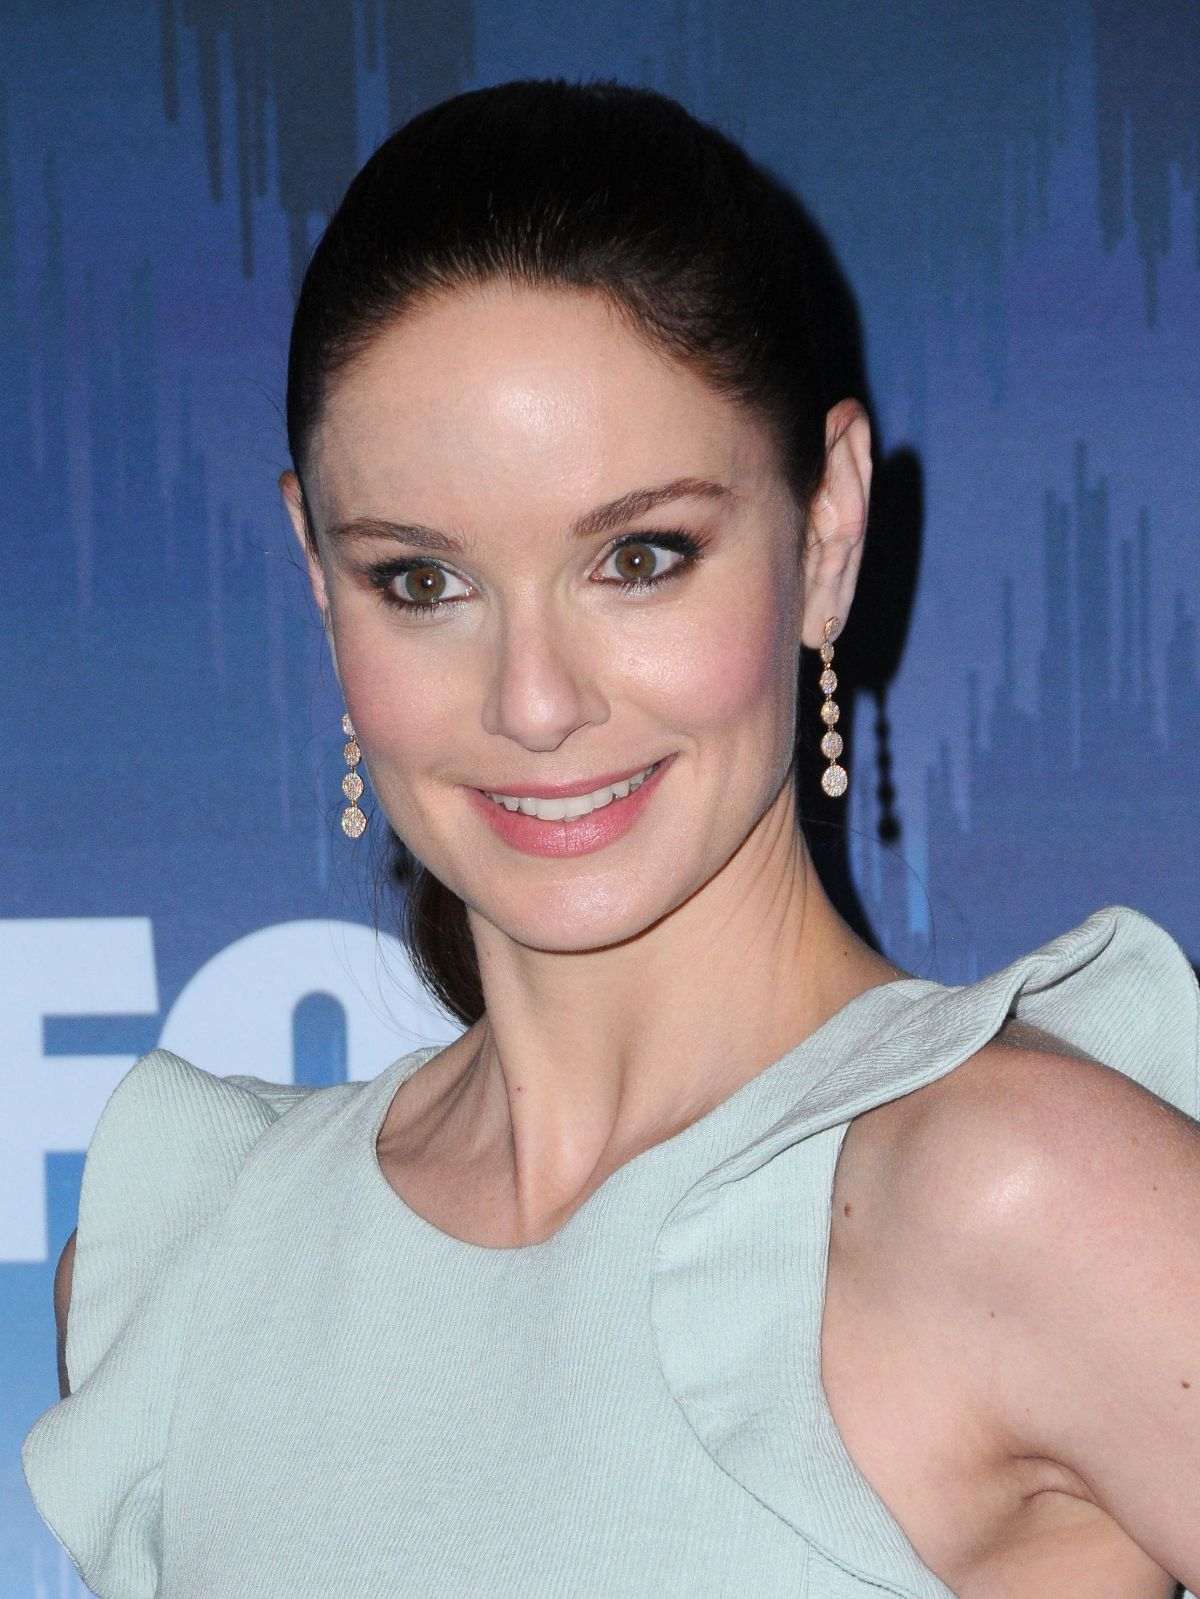 SARAH WAYNE CALLIES at Fox All-star Party at 2017 Winter TCA Tour in Pasadena 01/11/2017